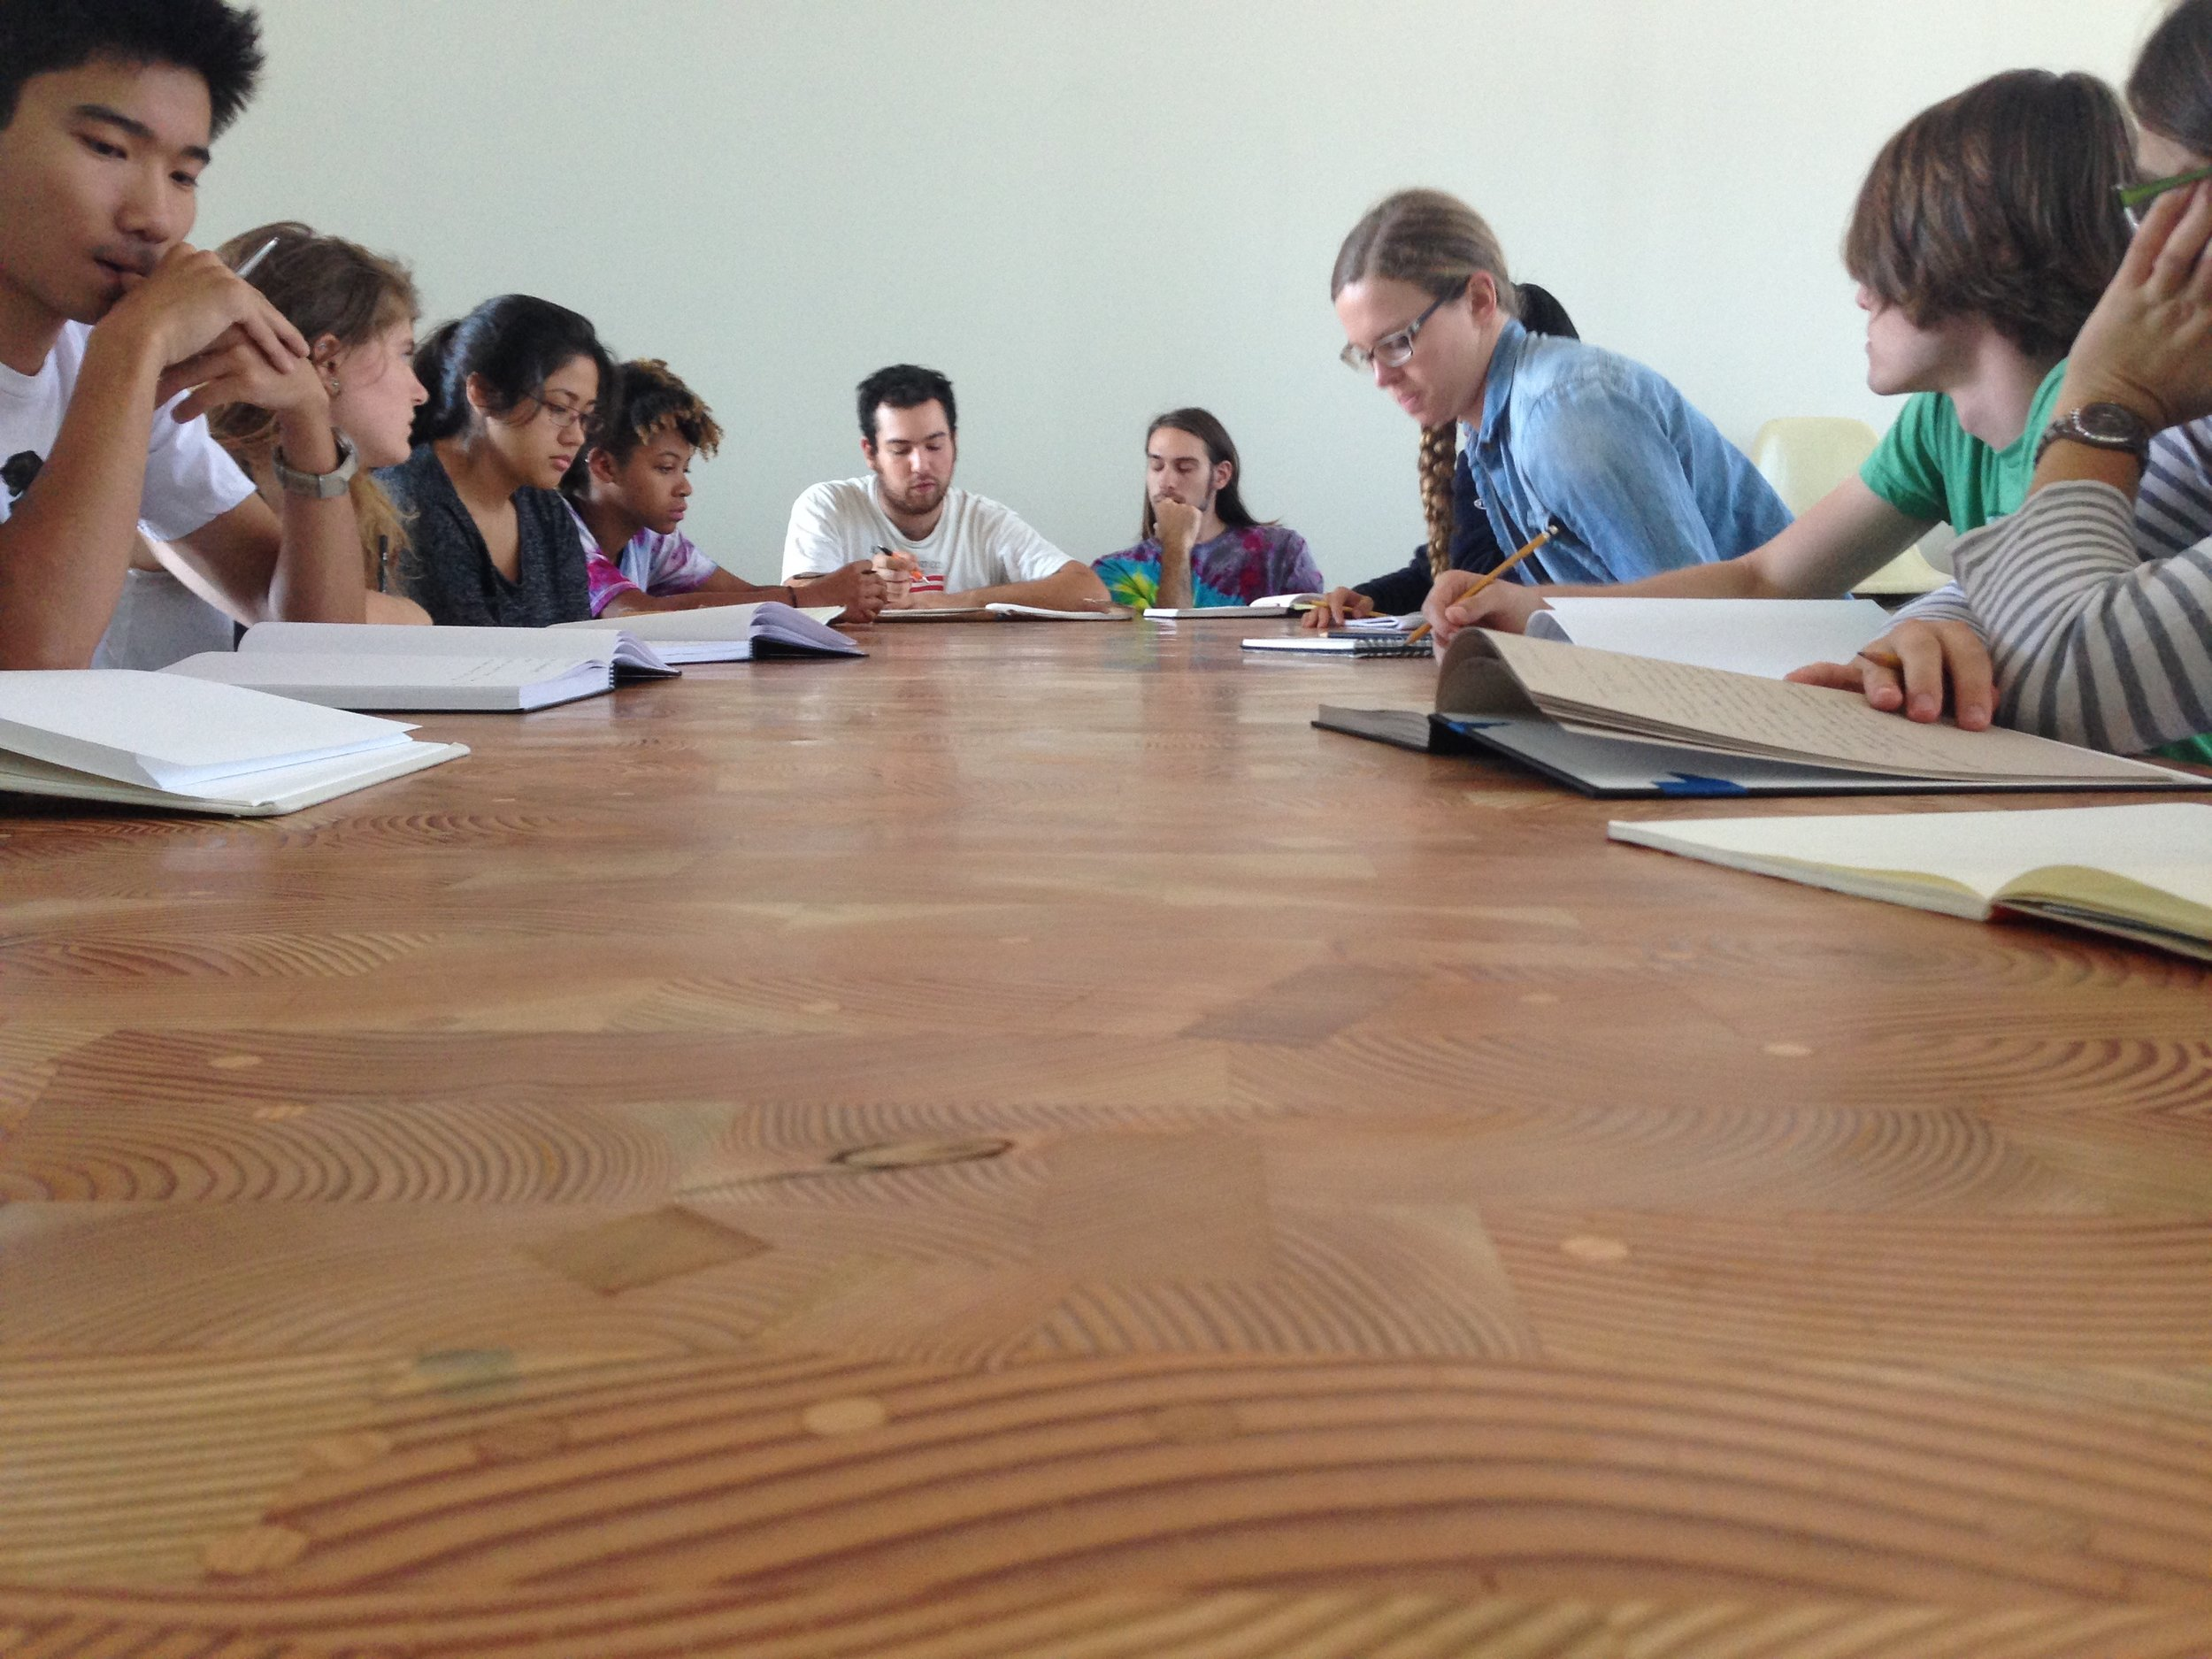 students conference table.jpg